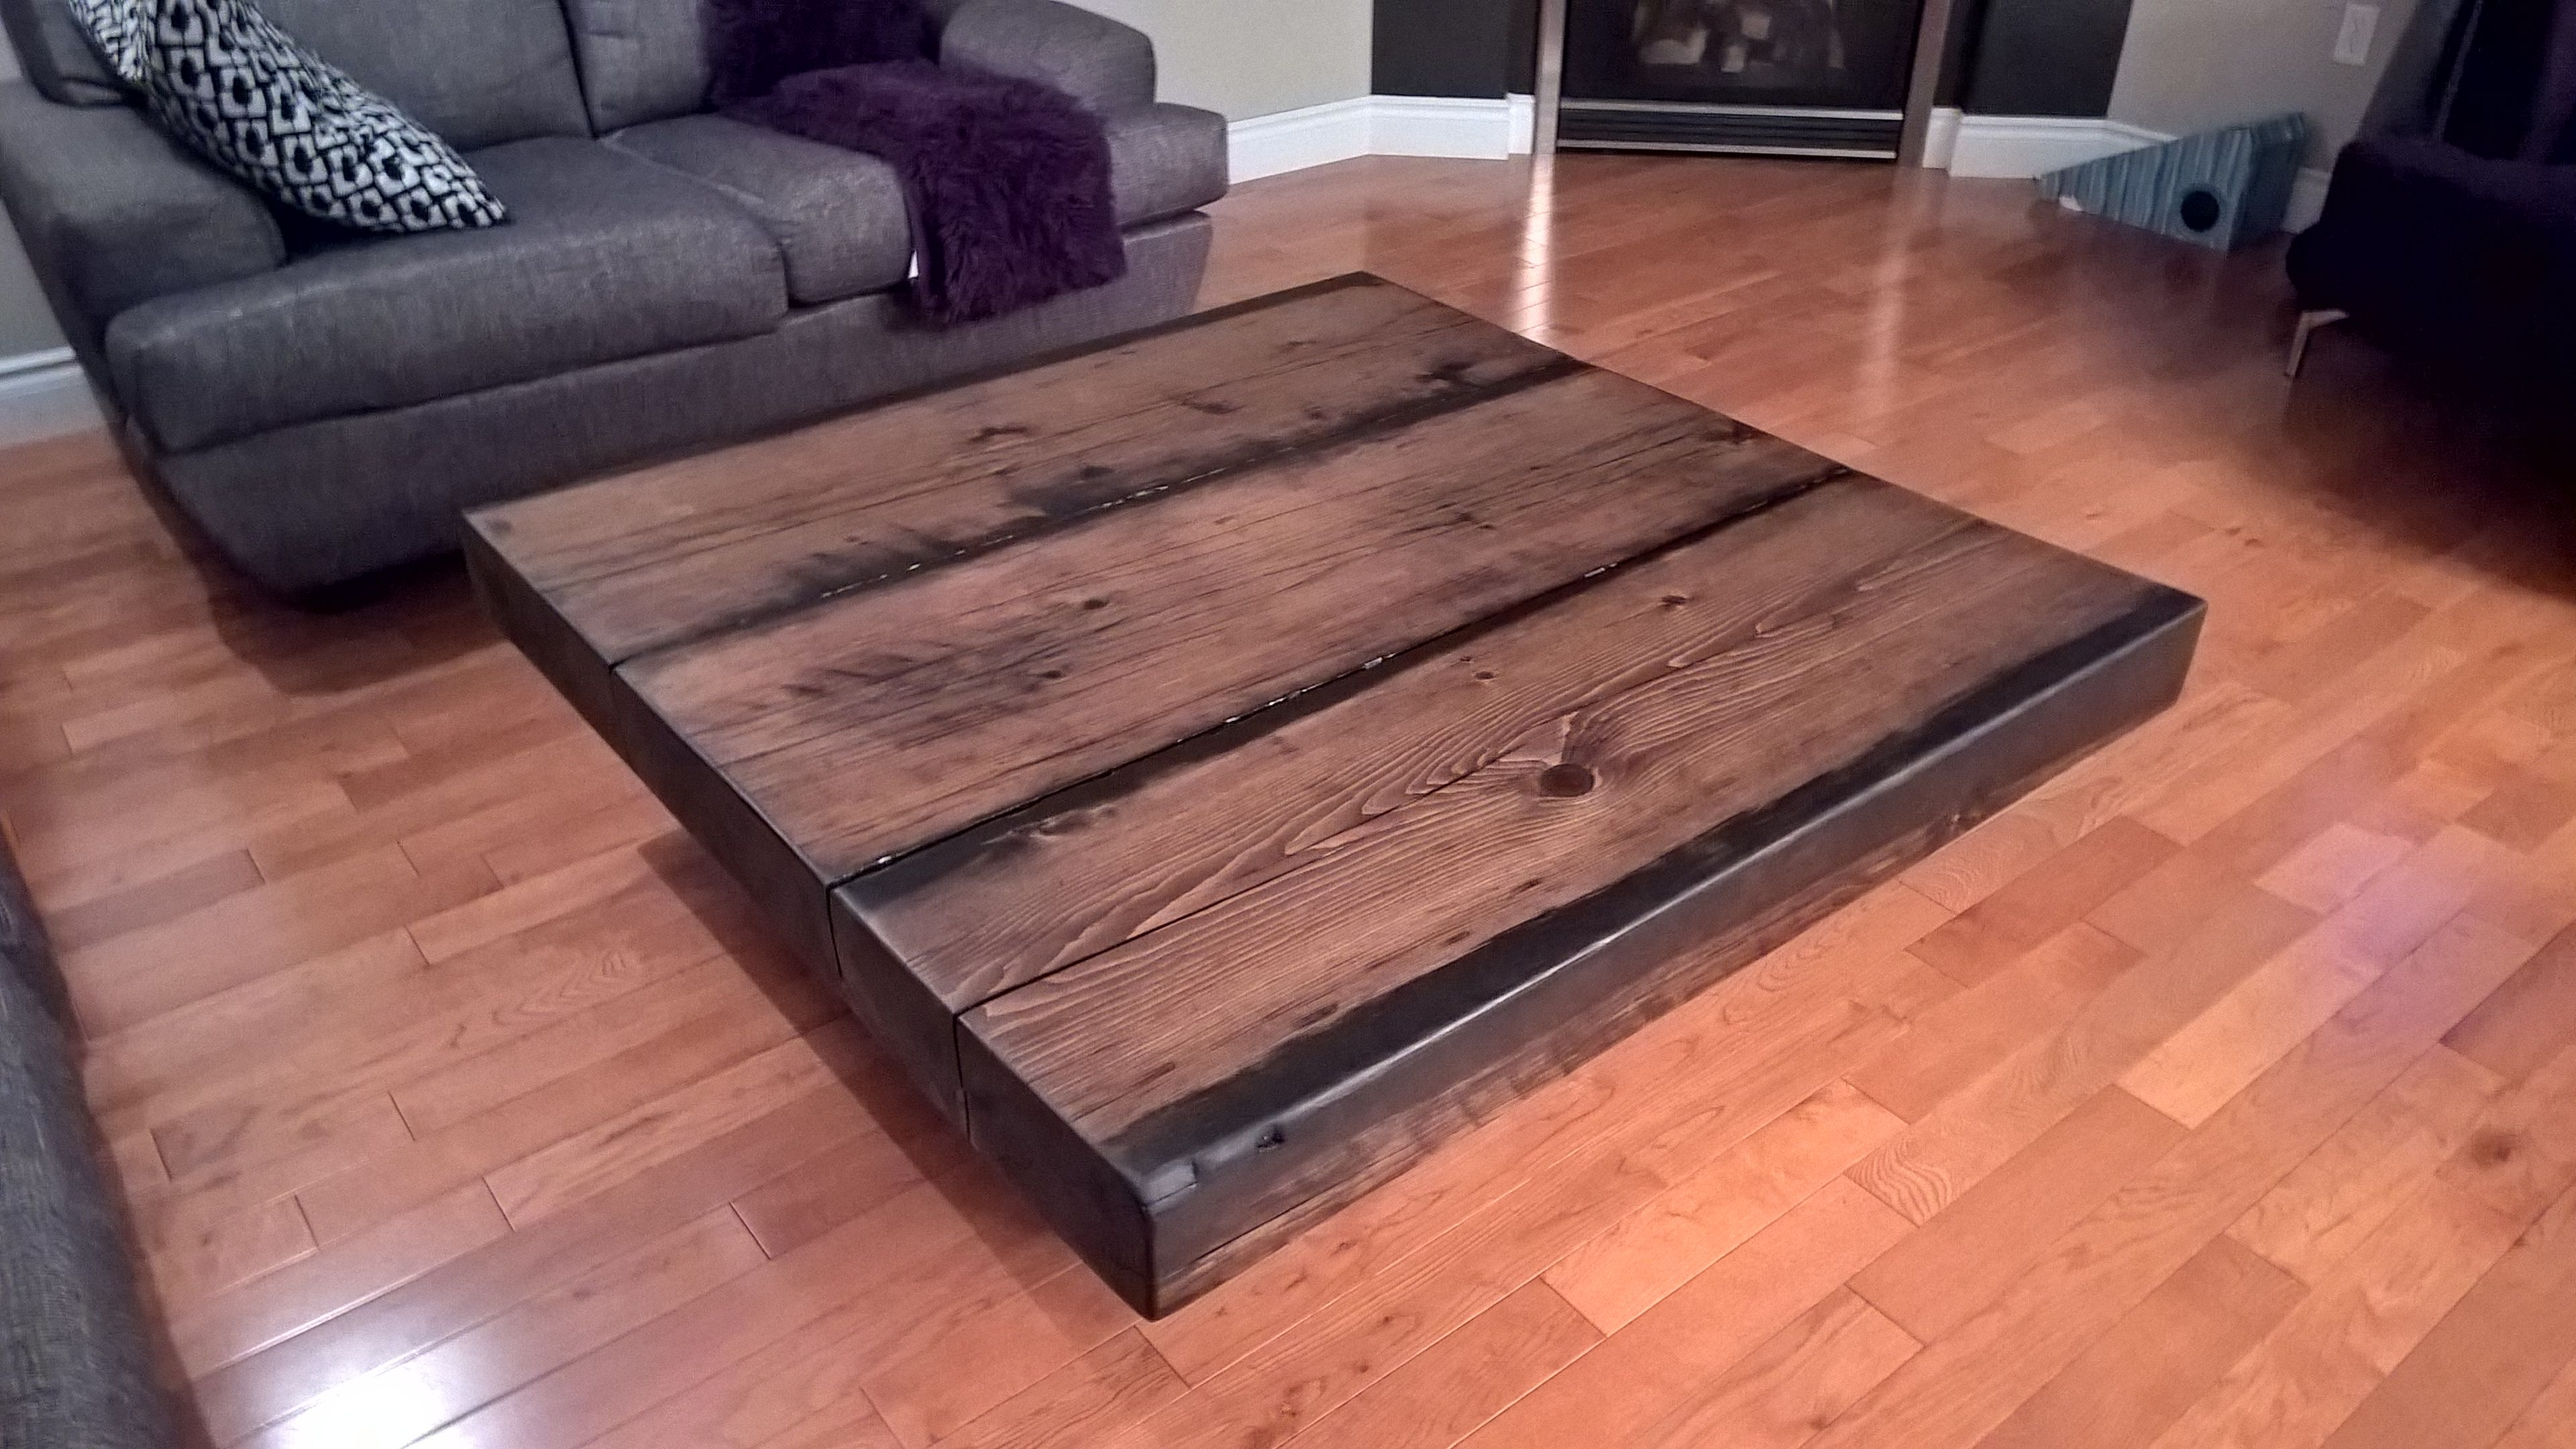 A Massive Coffee Table Made From Reclaimed Spruce Barn Beams